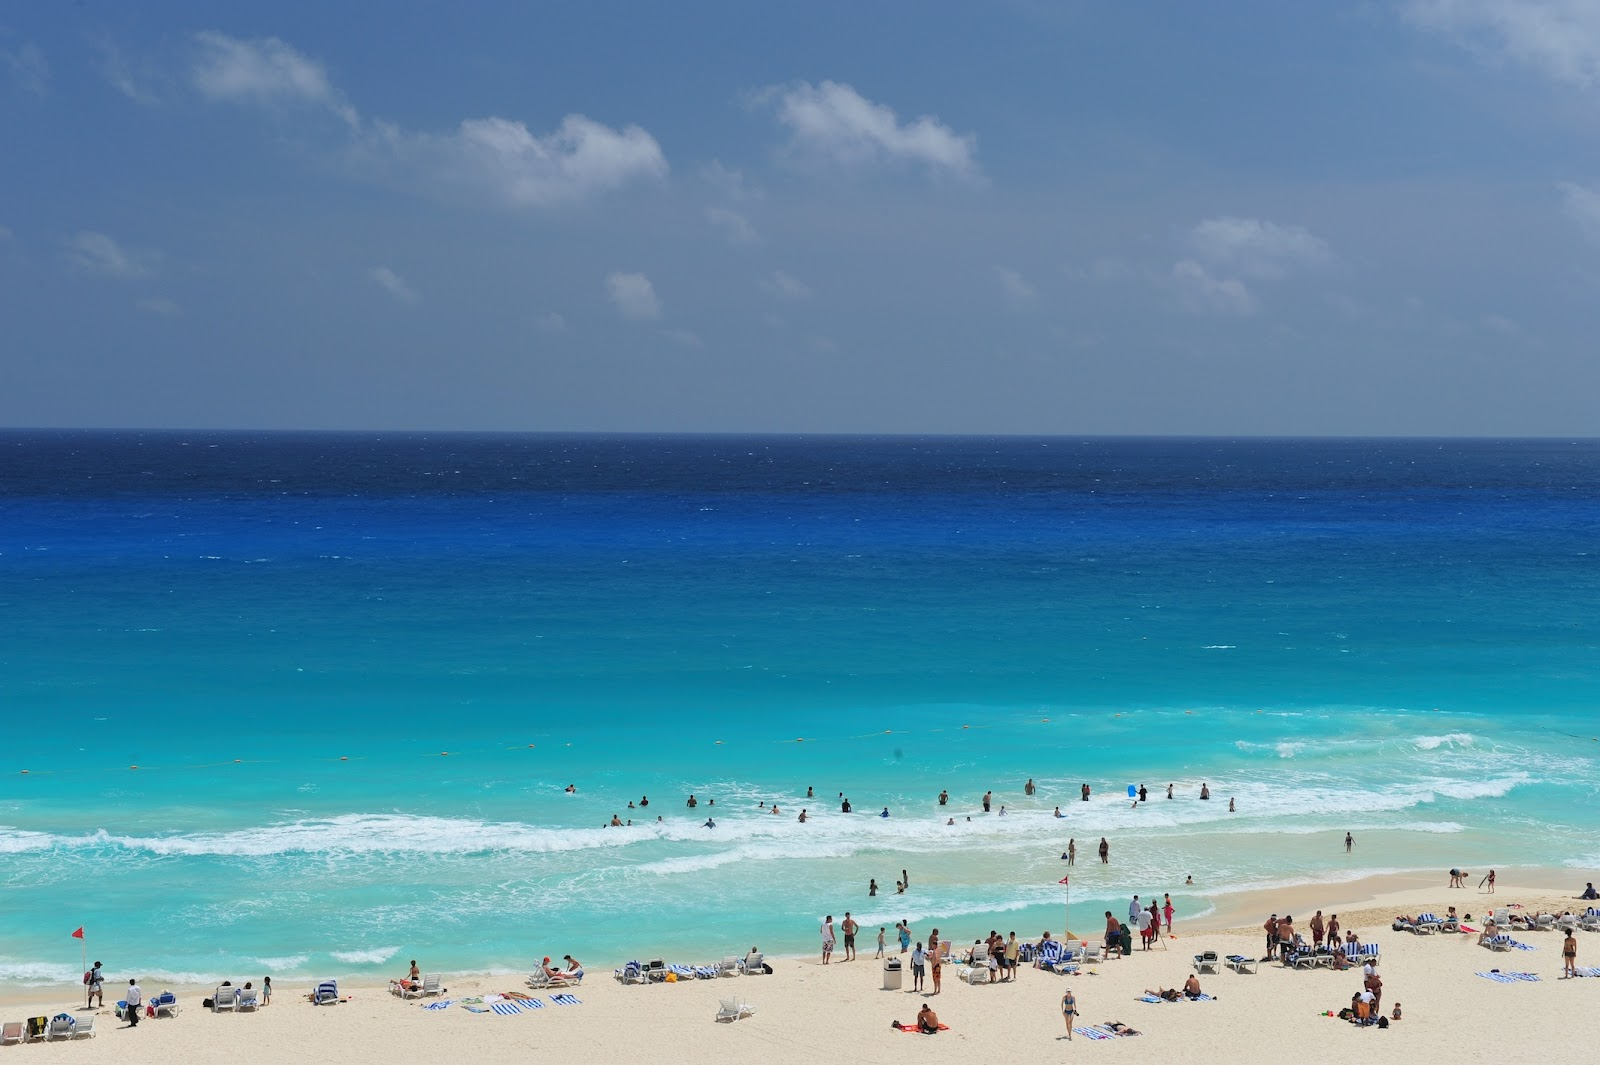 Free Download Cancun Beach Mexico Wallpapers 1600x1065 For Your Desktop Mobile Tablet Explore 48 Cancun Wallpaper Riviera Maya Mexico Wallpaper Mexico Beach Wallpaper Mexico Desktop Wallpaper